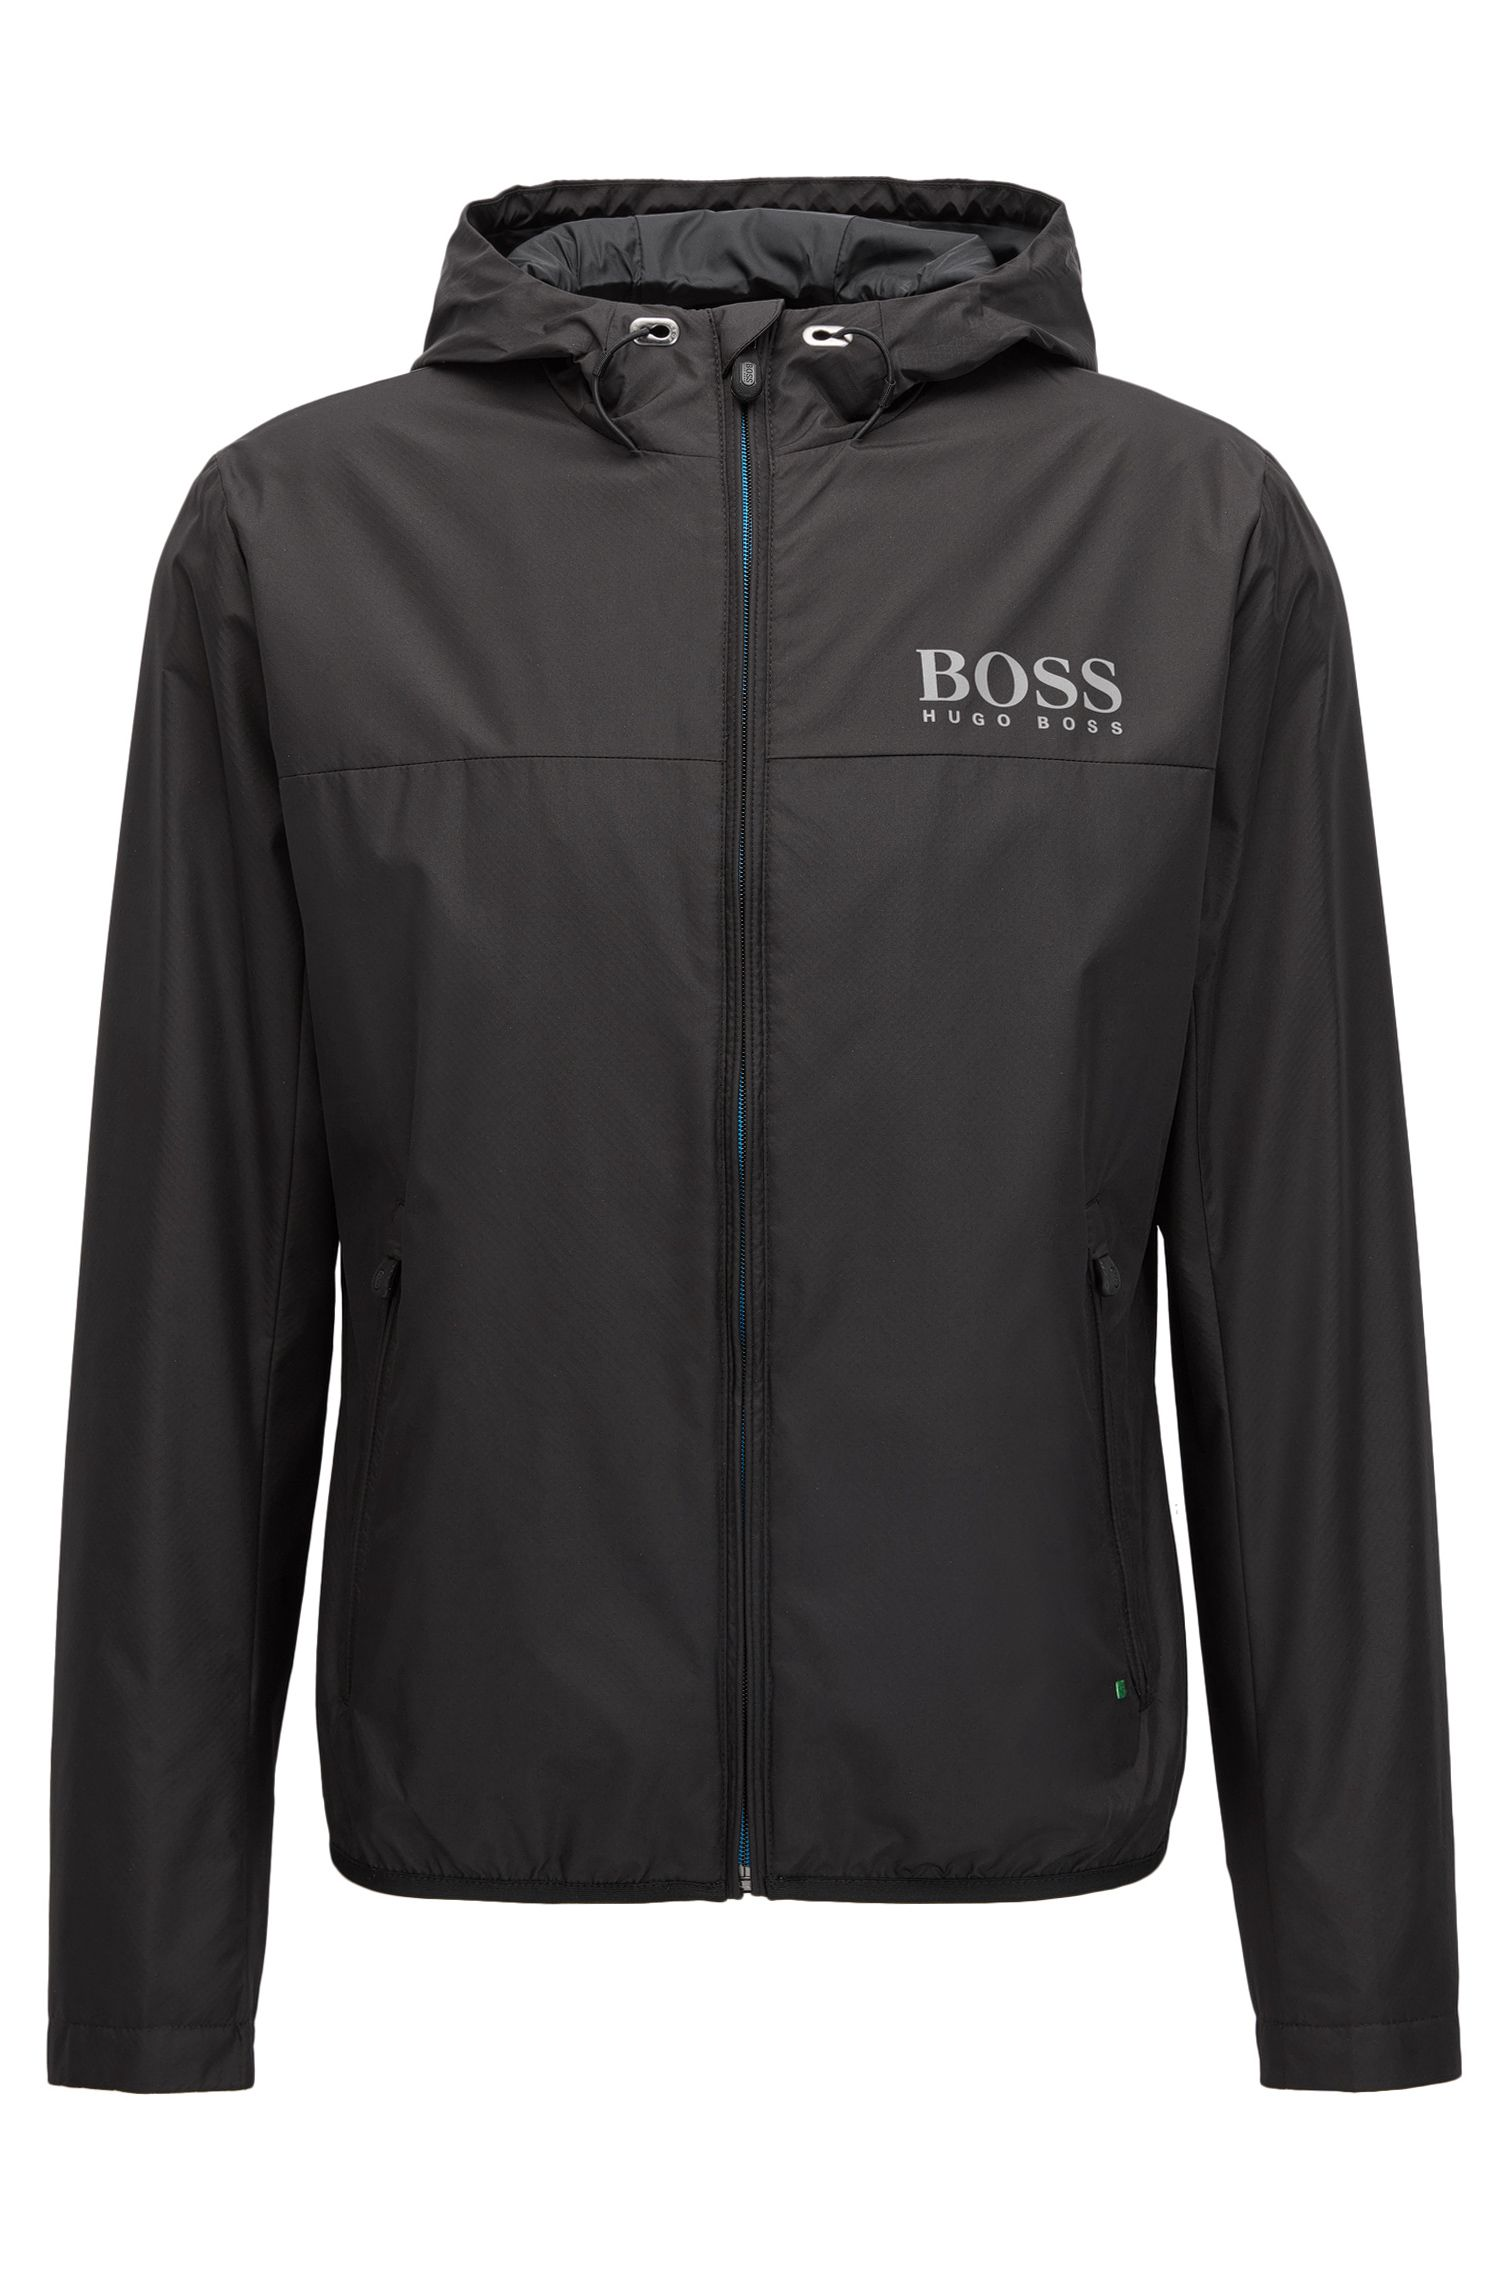 Water-resistant regular-fit jacket in technical fabric